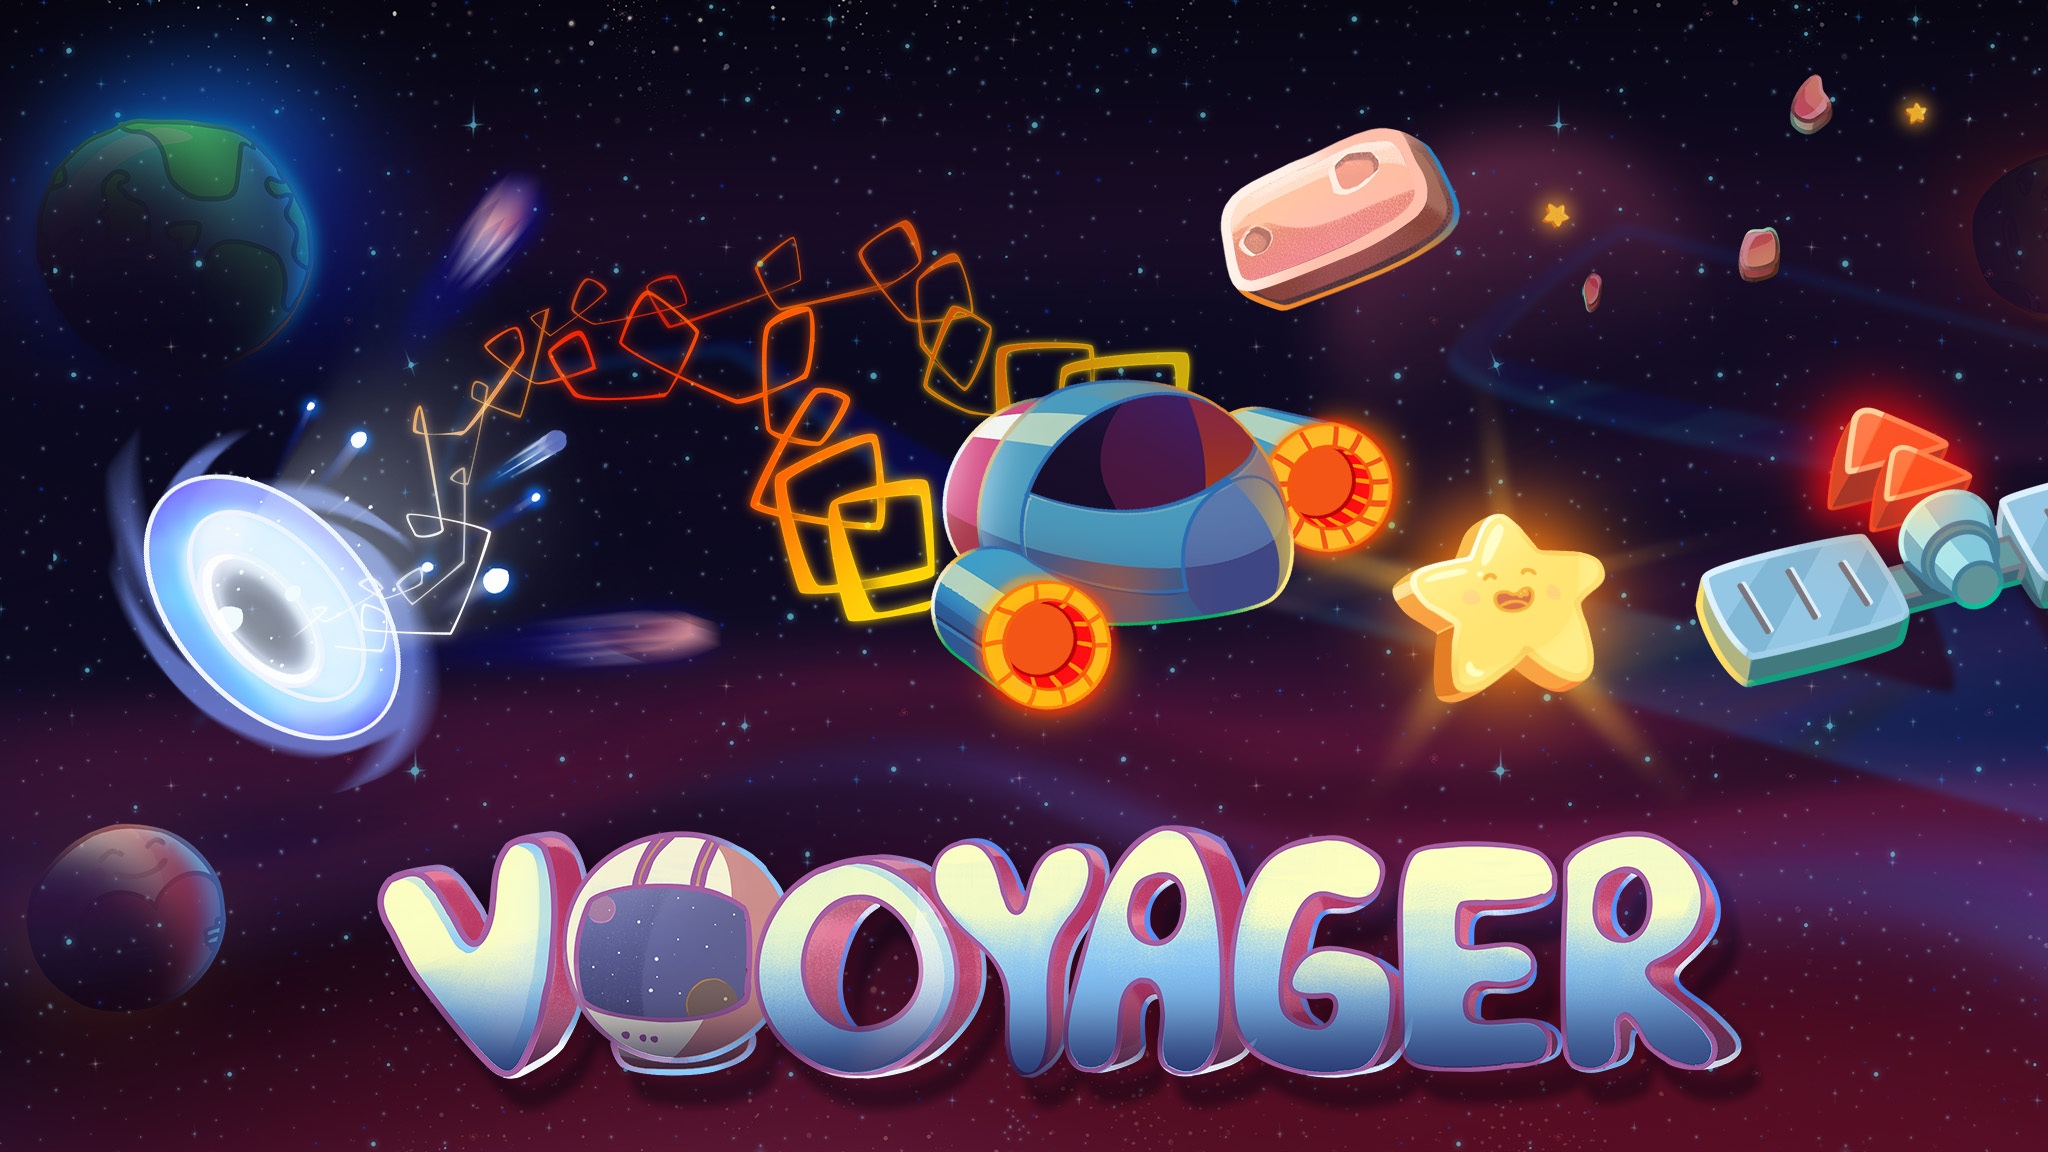 Vooyager Feature Image